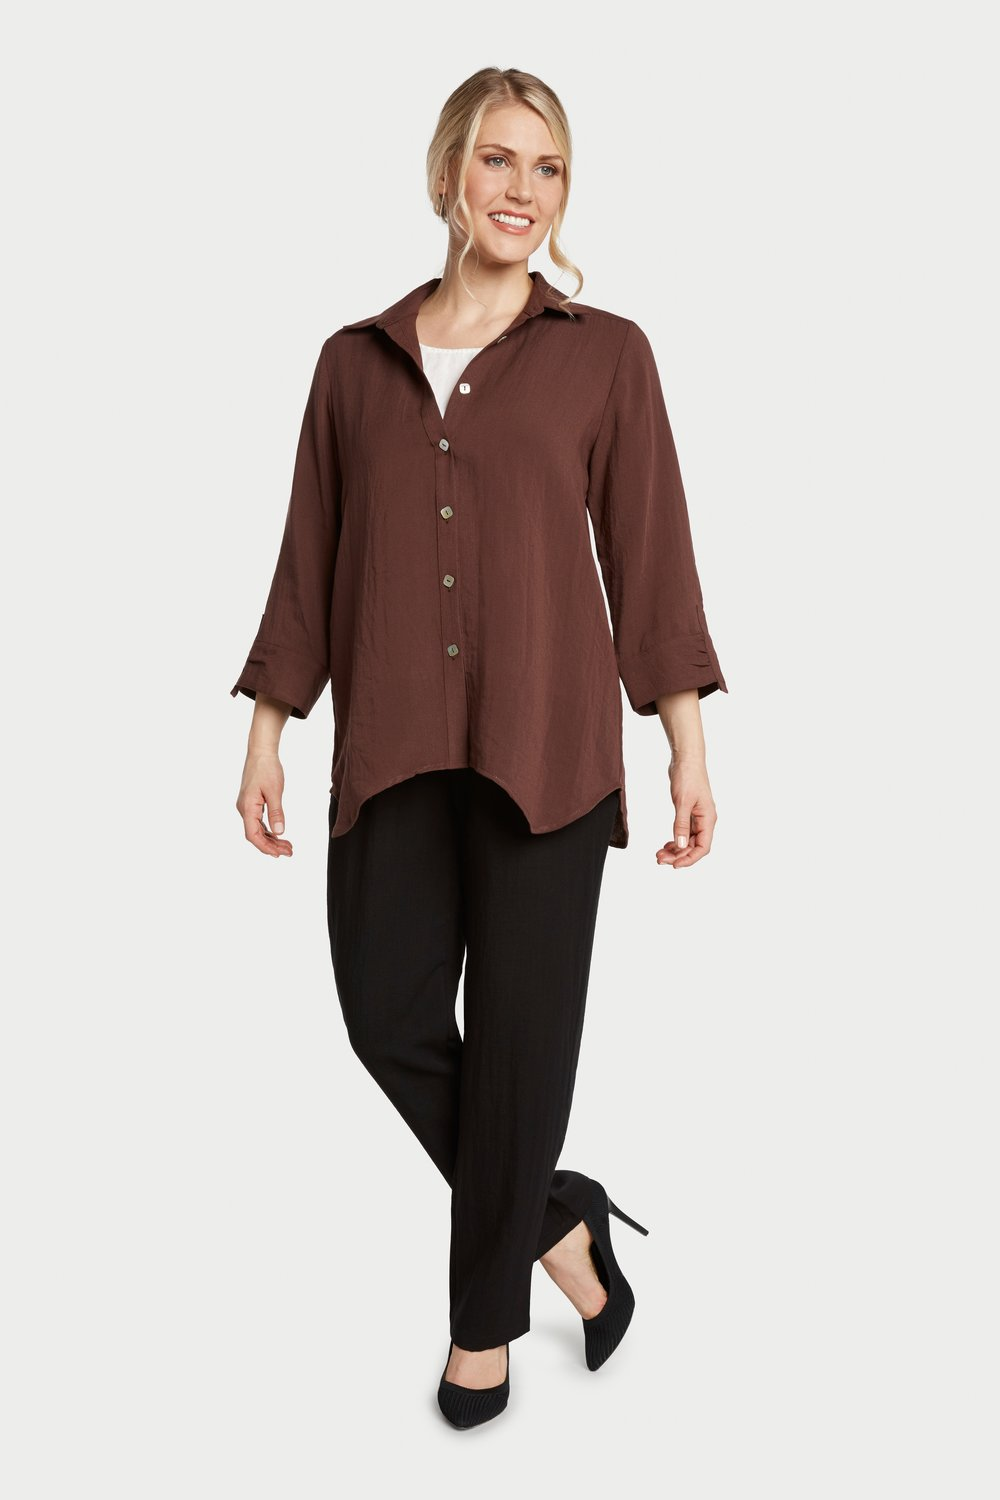 AA261 - Diamond Button-Up Shirt    Espresso - CL2407